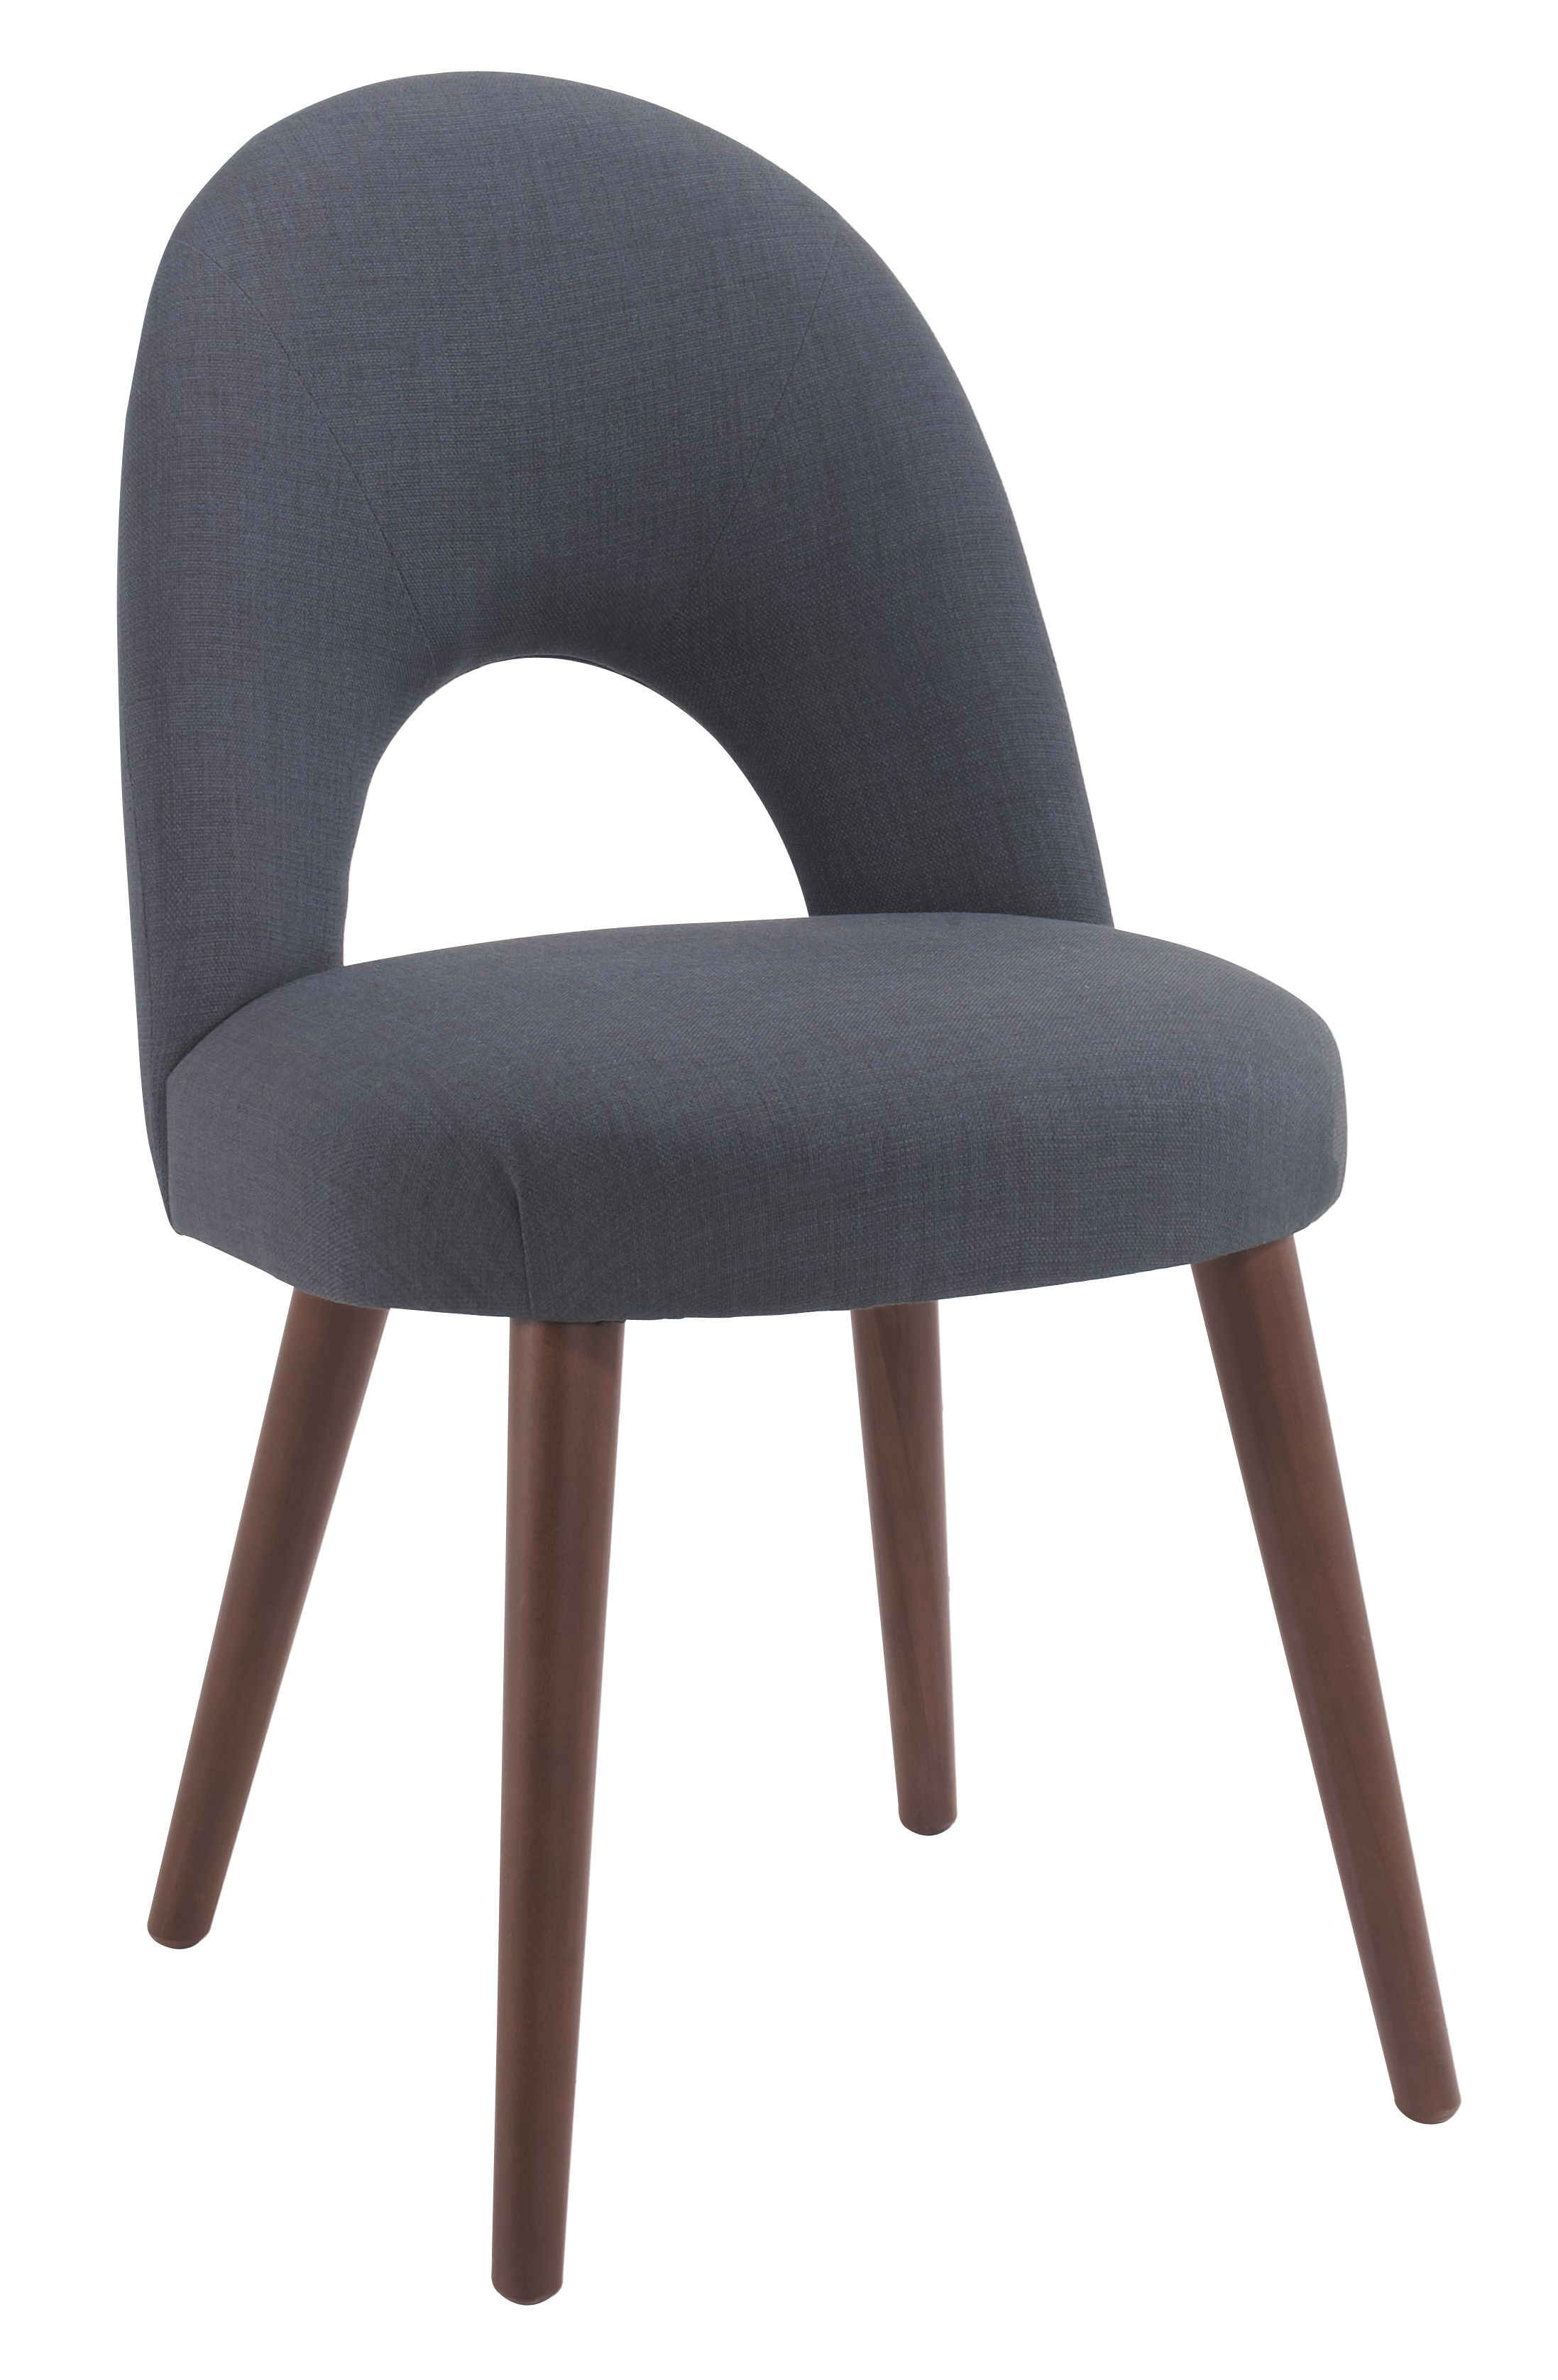 Dean walnut dining chair pair (charcoal)